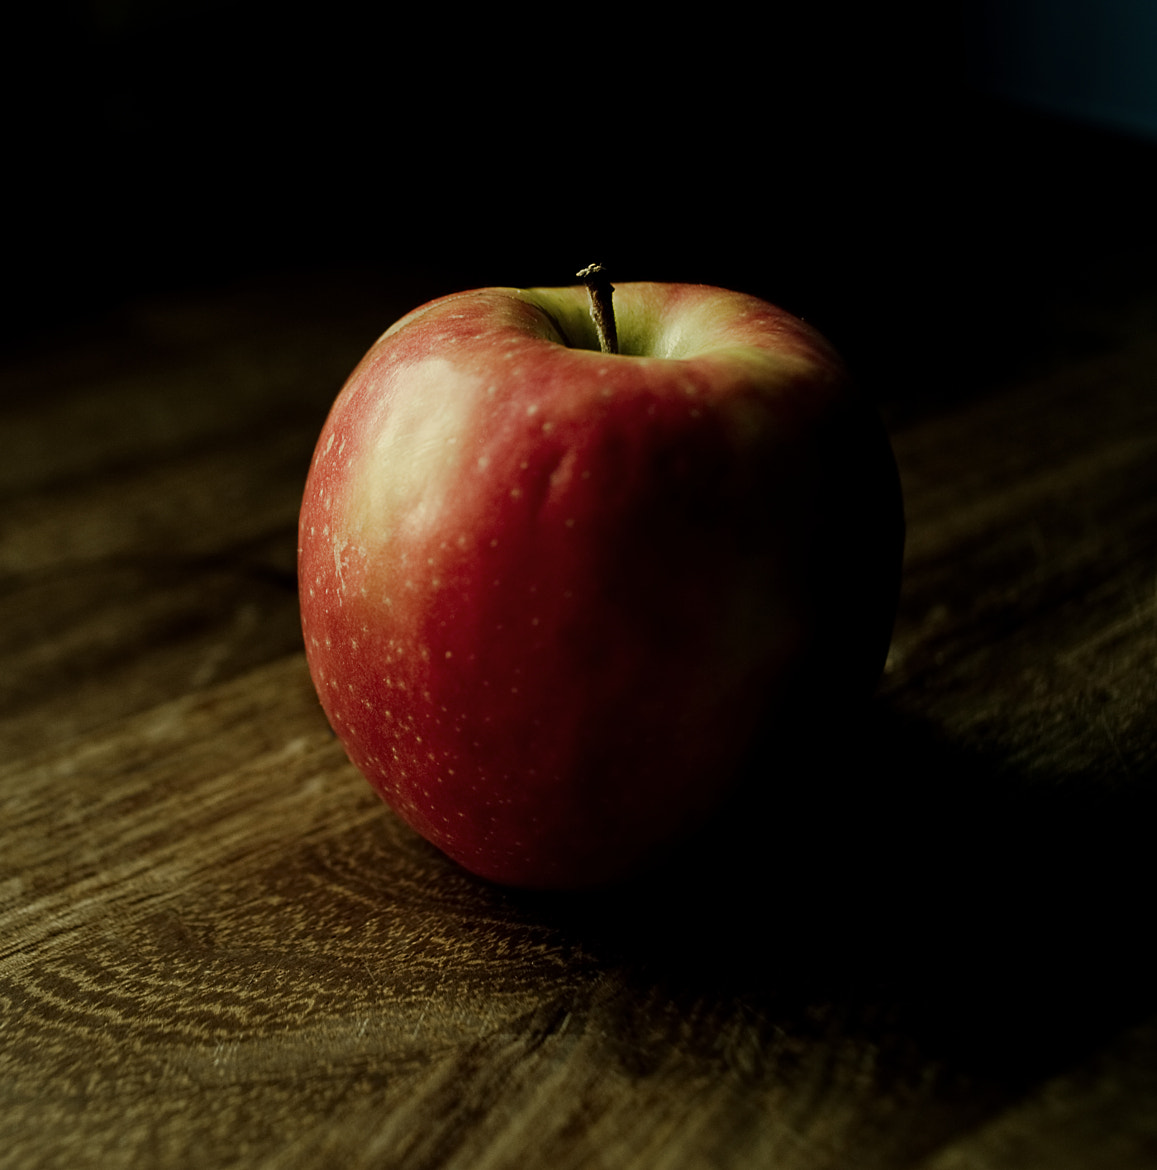 Photograph apple by louise kay on 500px